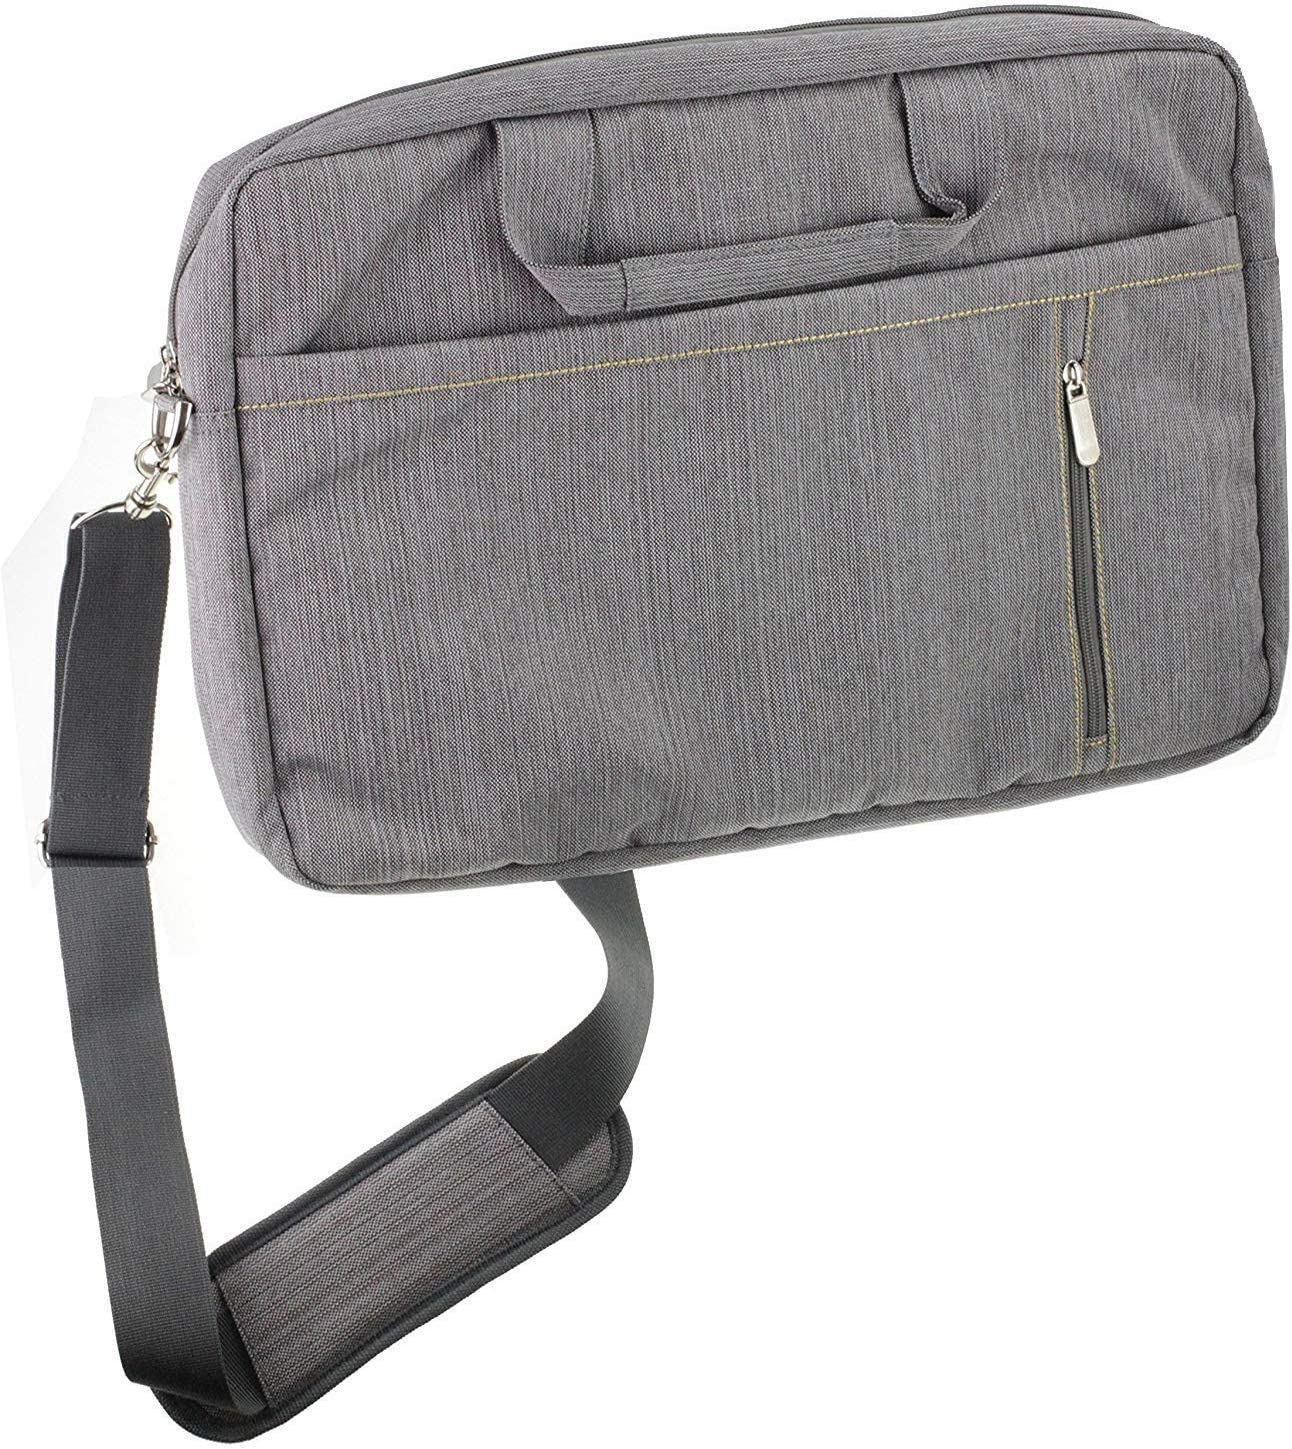 Navitech Grey Premium Messenger Bag - Compatible with The iOTA ONE, 10.1-Inch 2-in-1 Laptop…